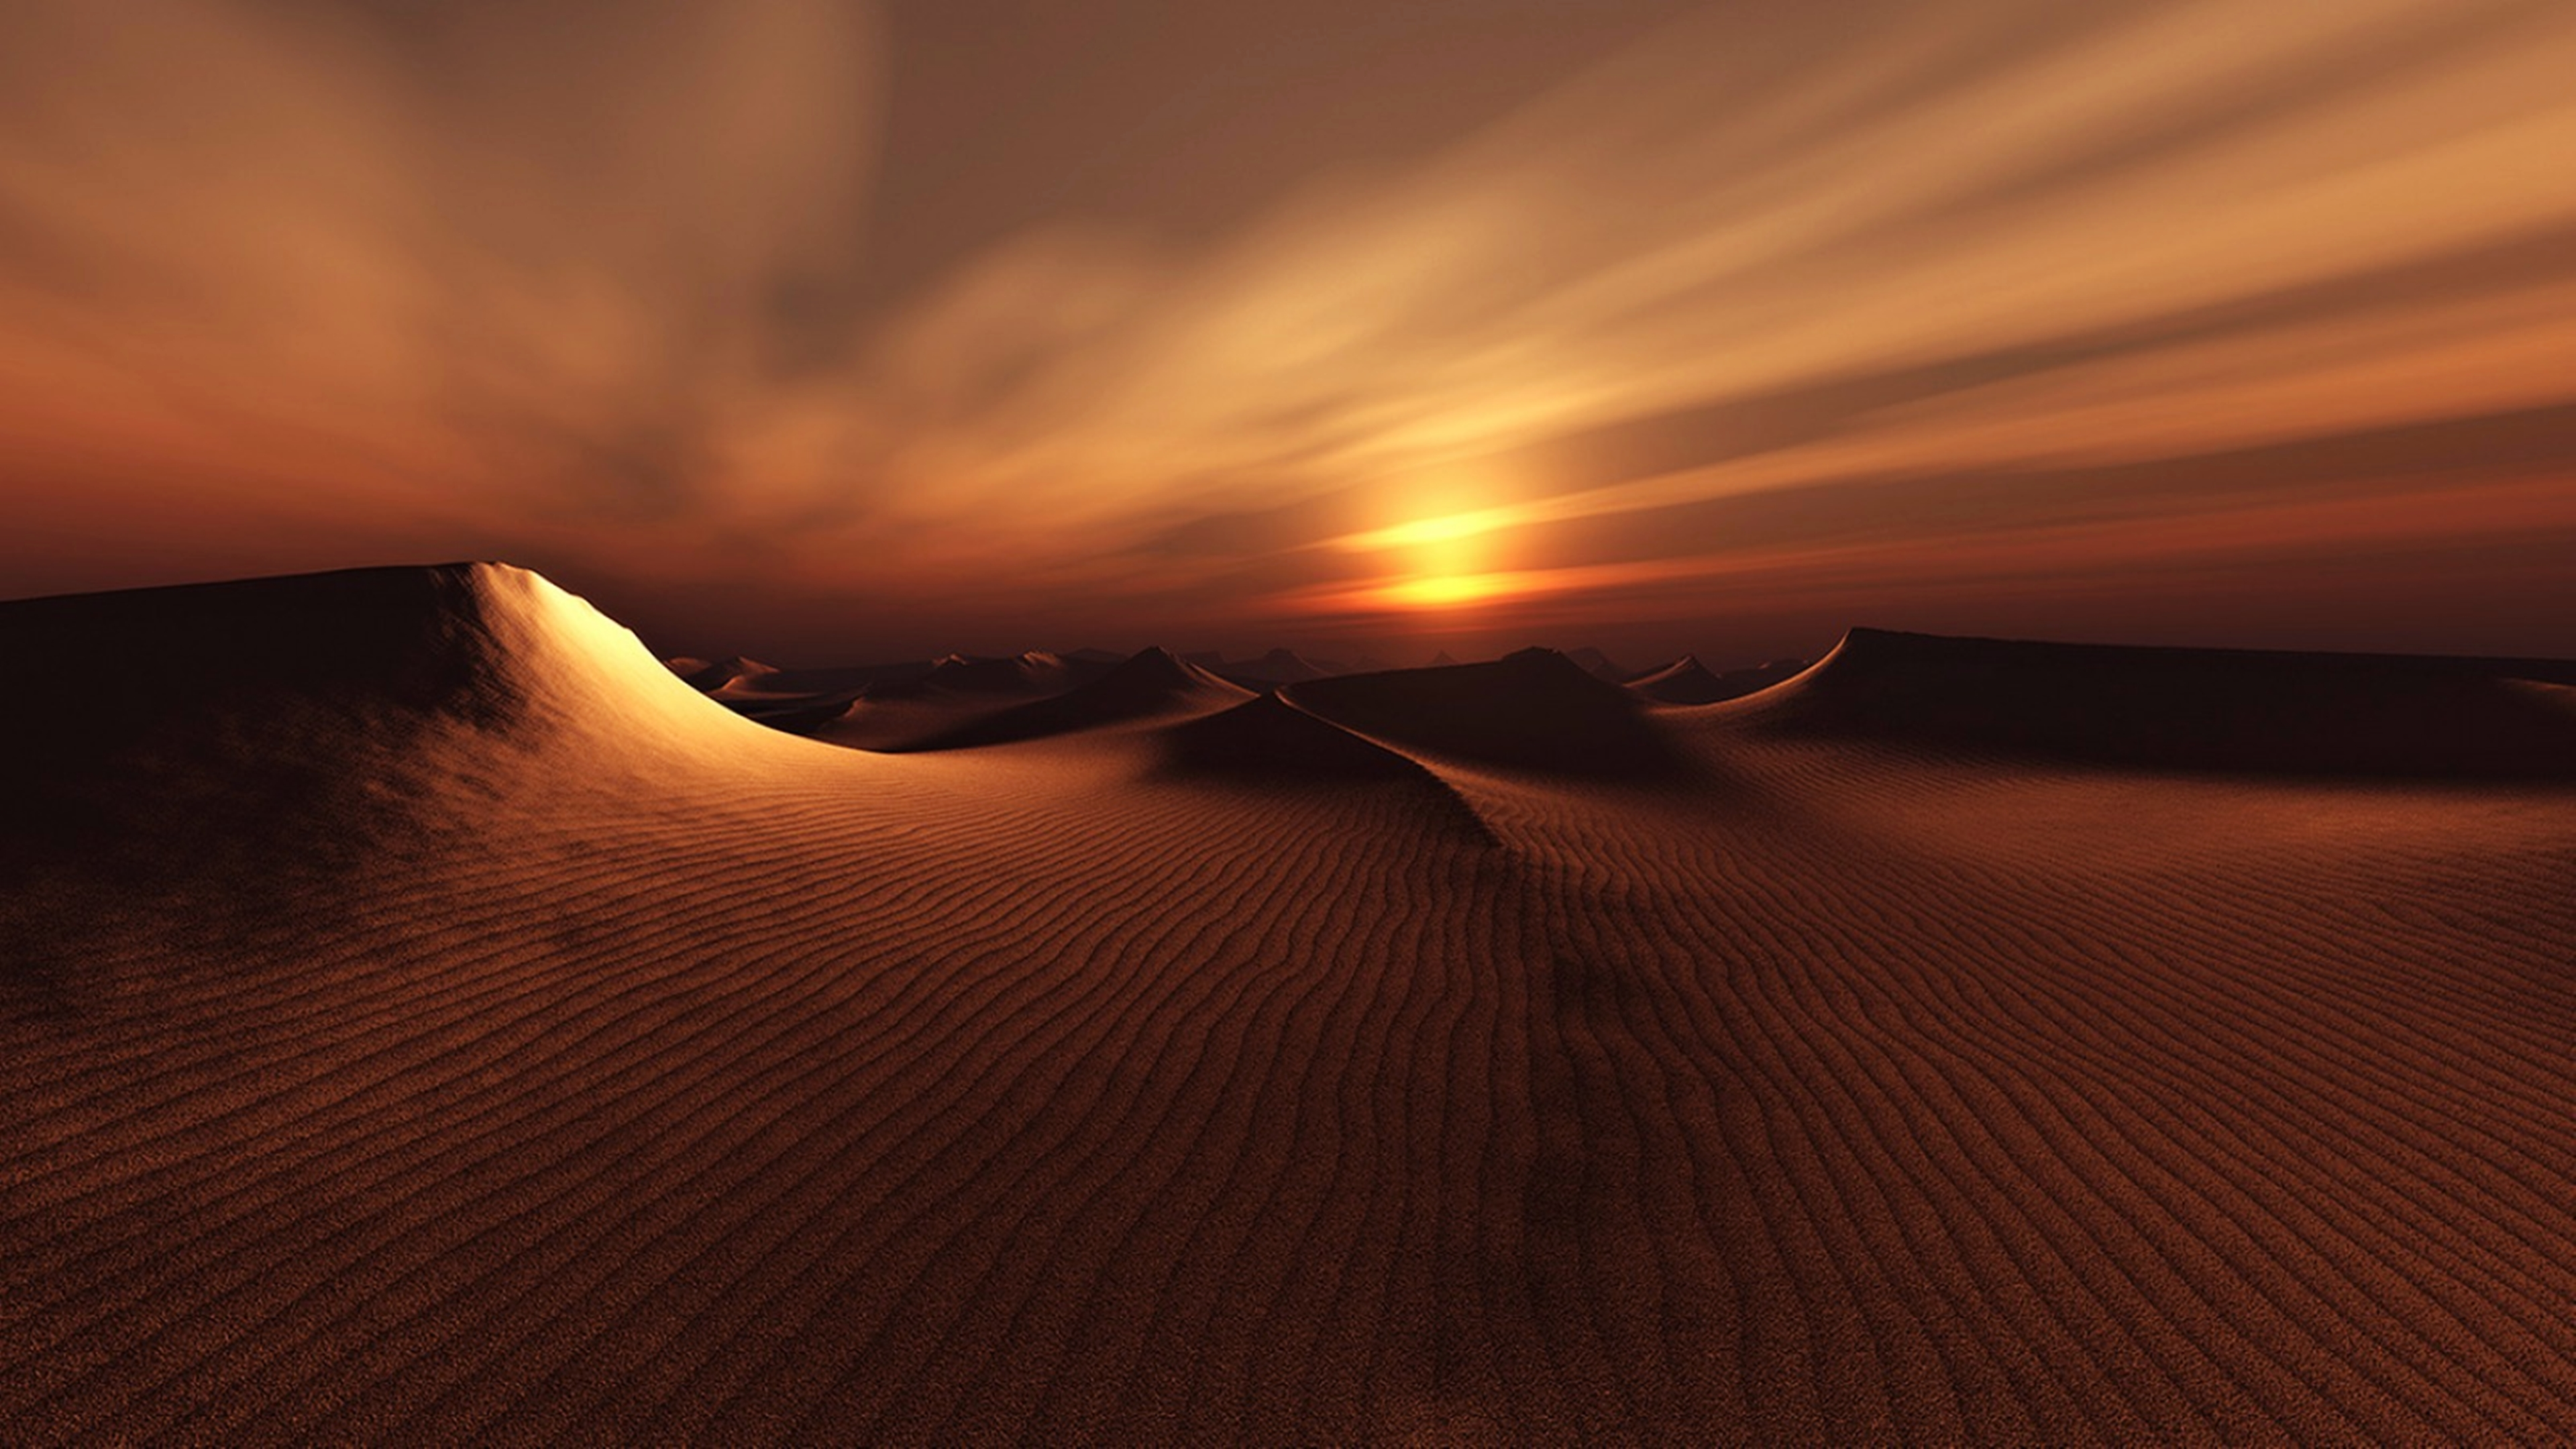 desert sunset wallpaper